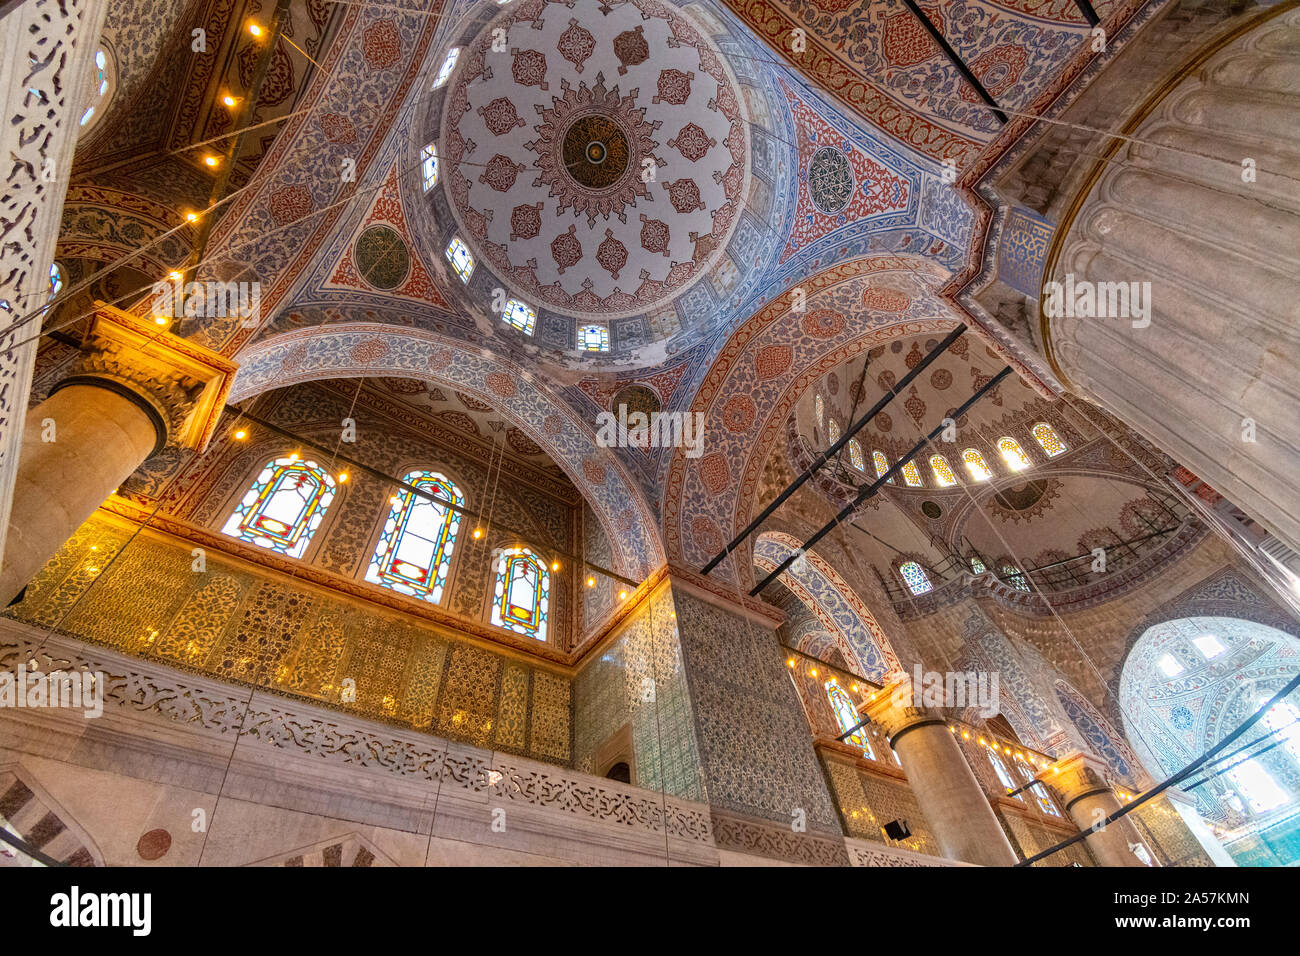 The interior, celing, mosaics and dome of the Blue Mosque in the Sultanahmet district of Istanbul, Turkey Stock Photo